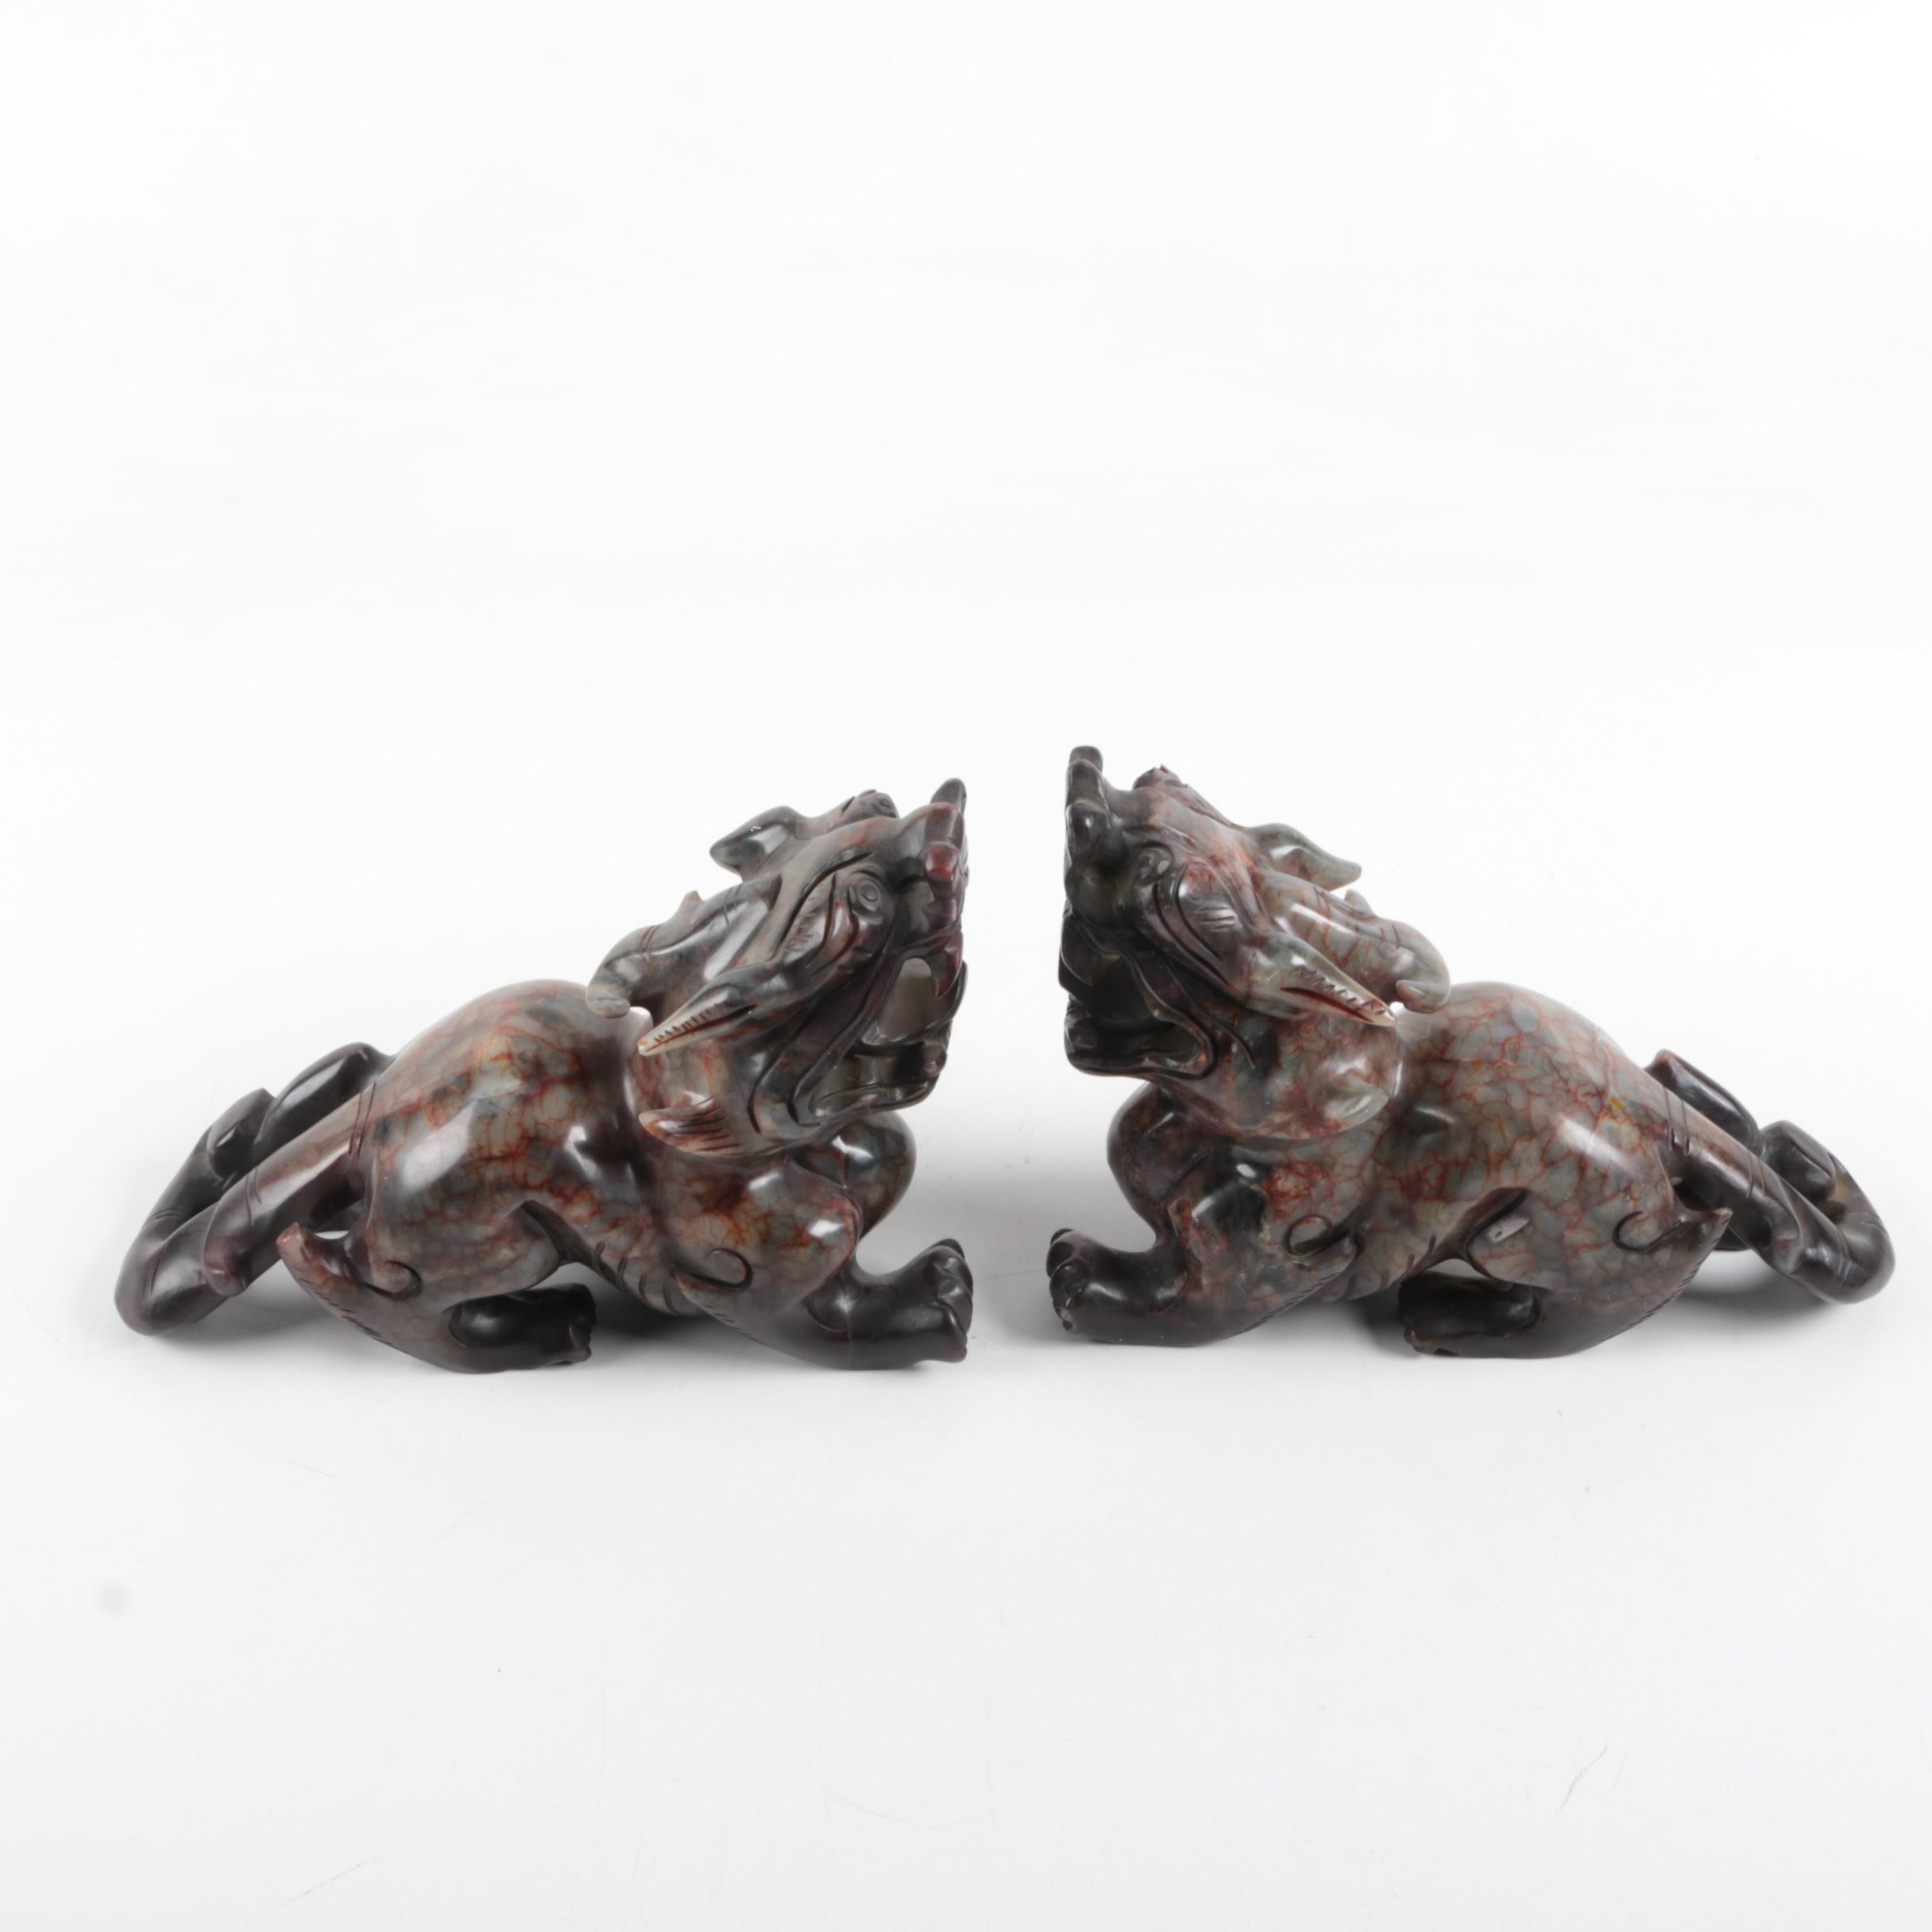 Chinese Inspired Soapstone Dragon Bookends